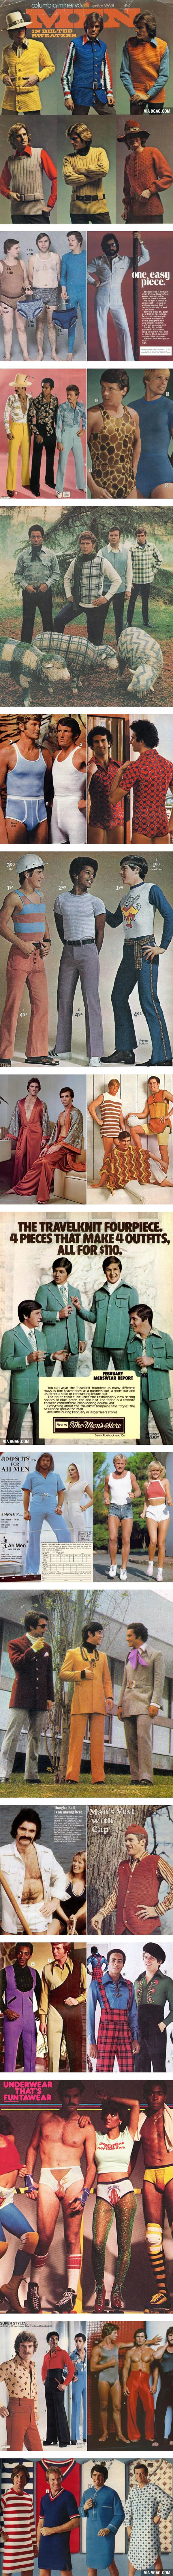 Awkward 70s Male Fashion